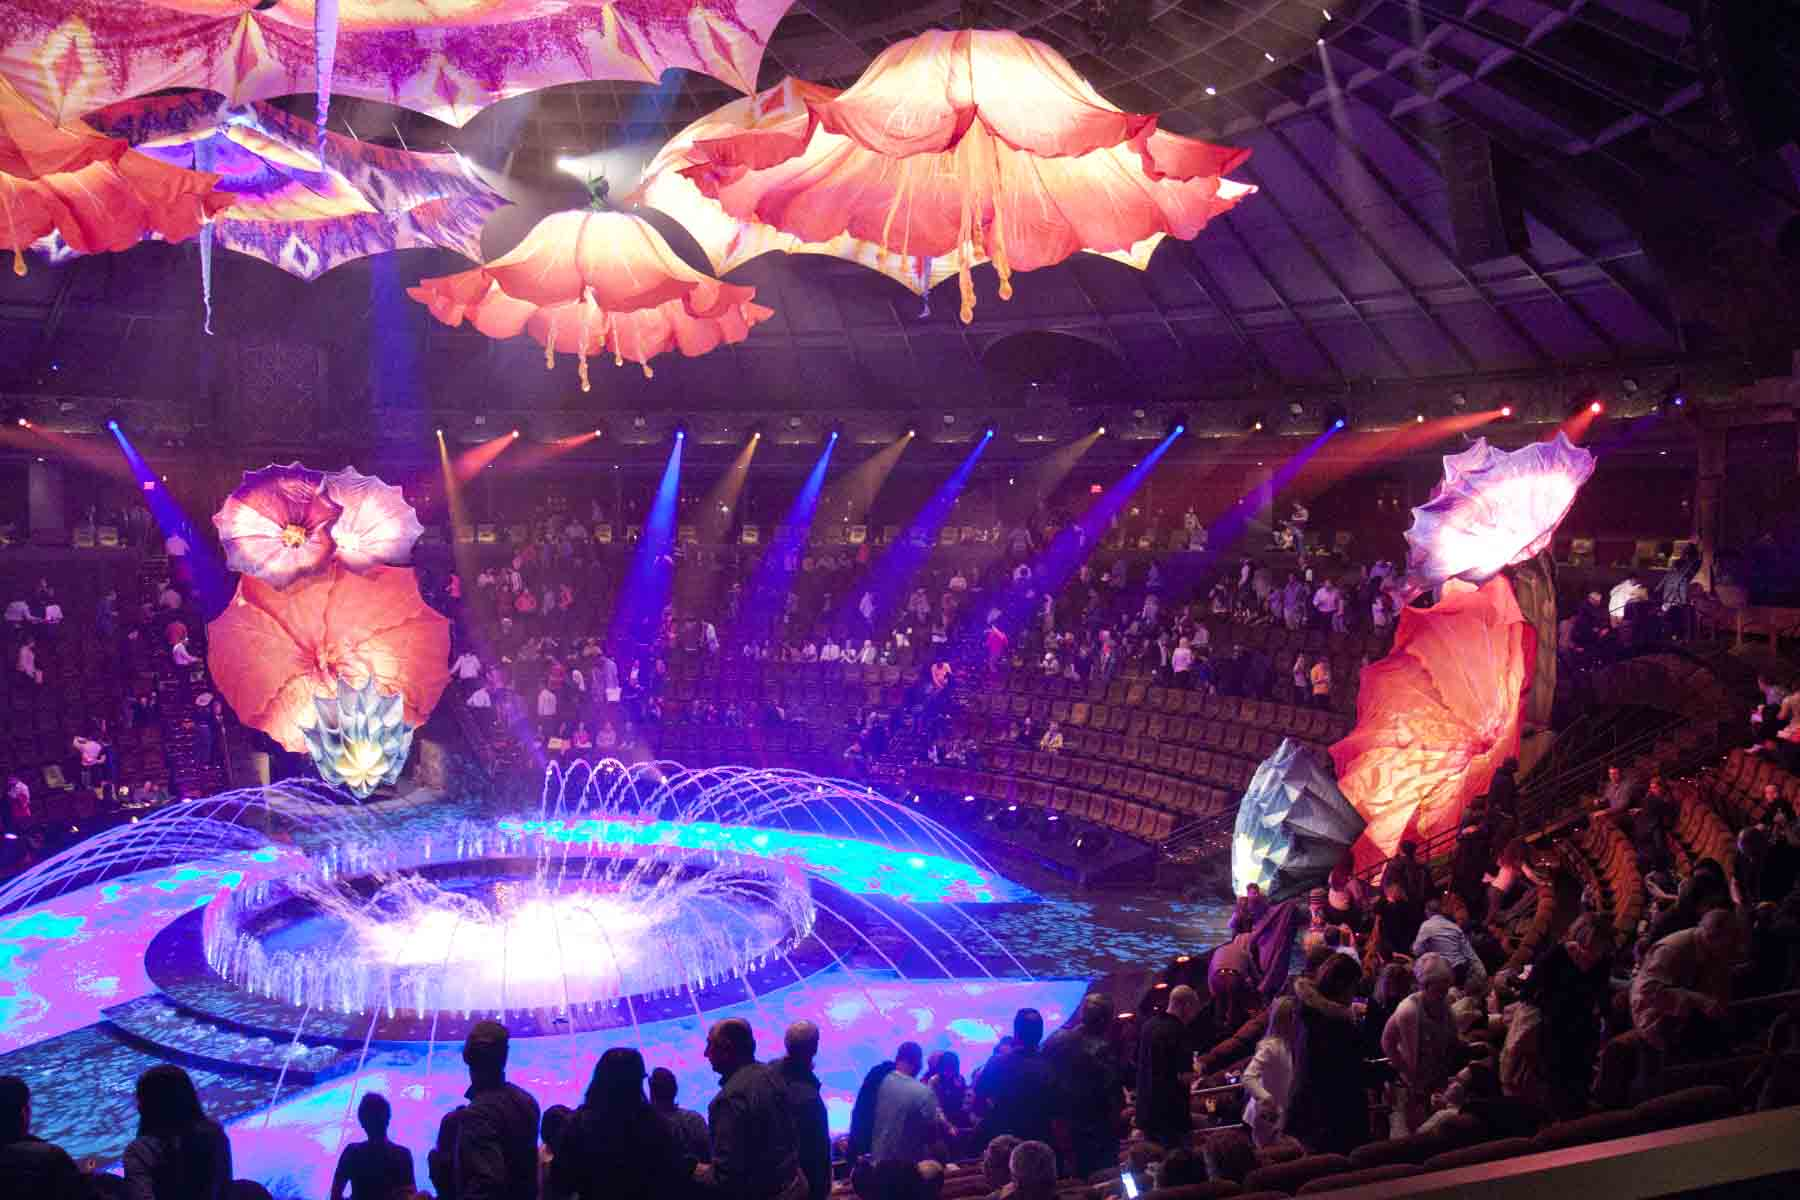 Not only do we offer discount Le Reve tickets, but the cheapest Le Reve tickets in the industry. In addition to that, you will also have access to a wealth of information. For instance, you can look up Le Reve dates, Le Reve seating charts, and any recently updated Le Reve news.